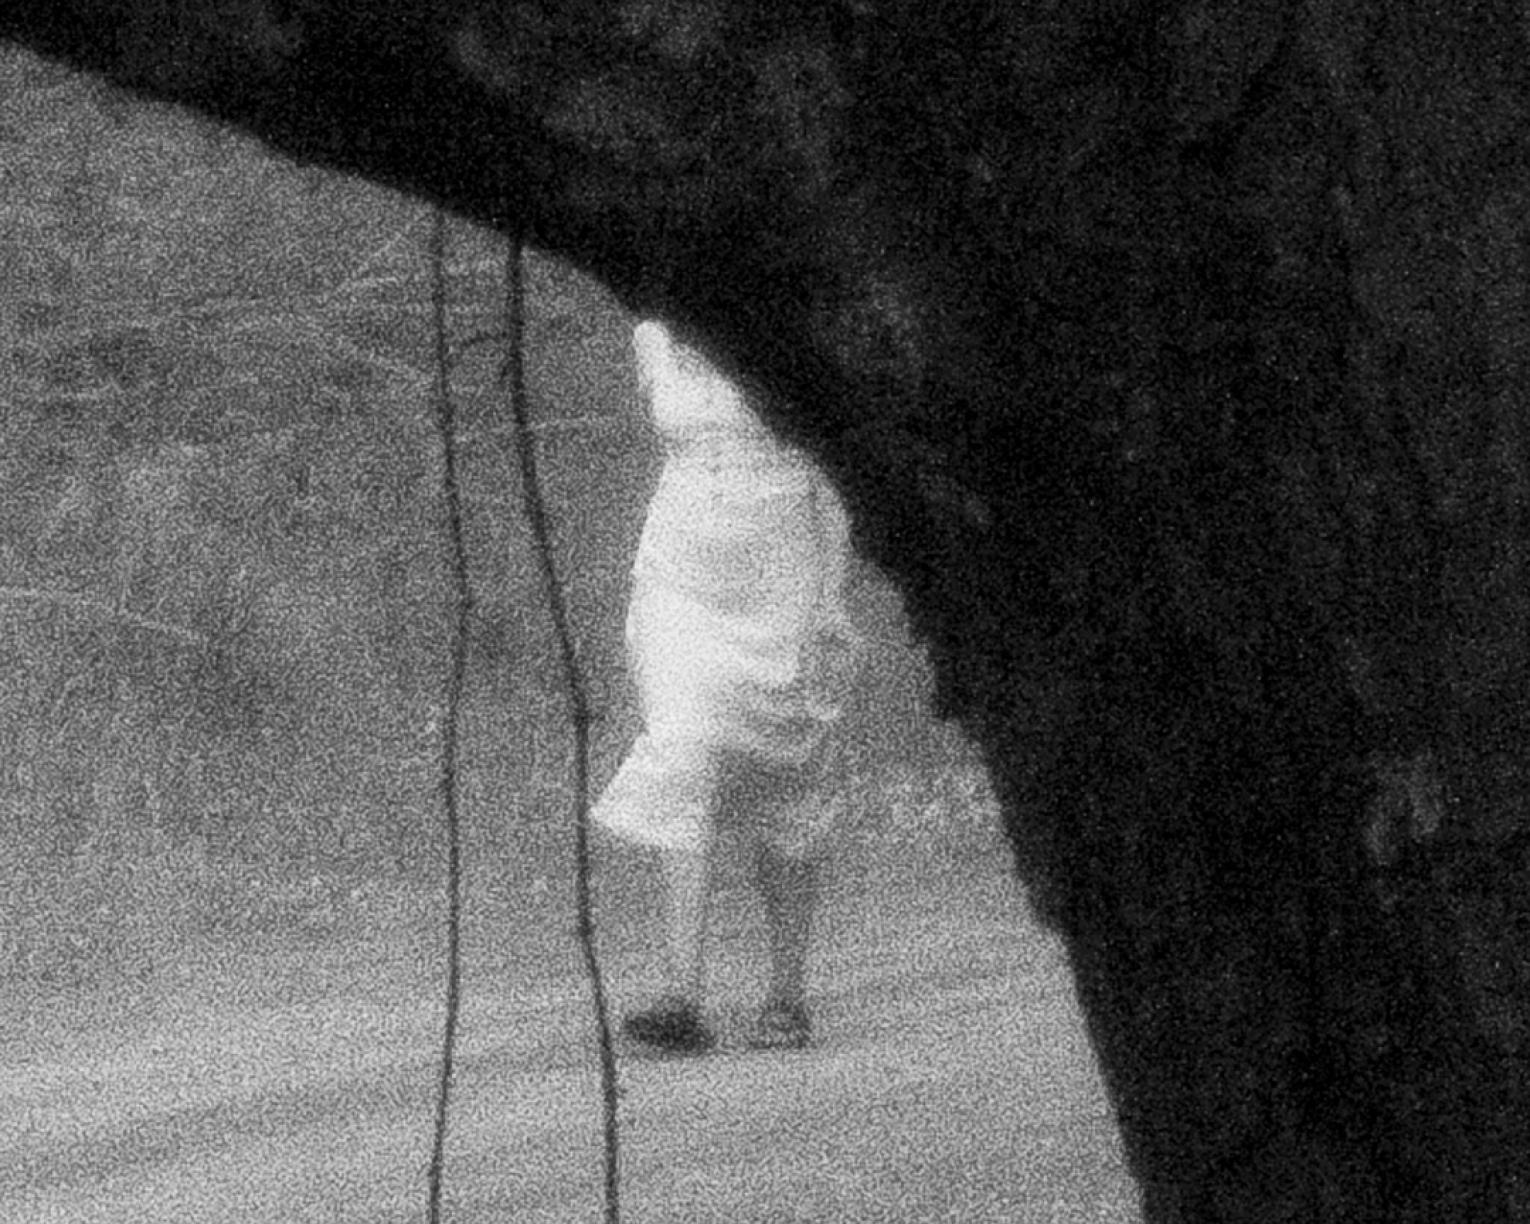 Black and white photo of person in a white dress holding a glass, partially obscured by tree limb